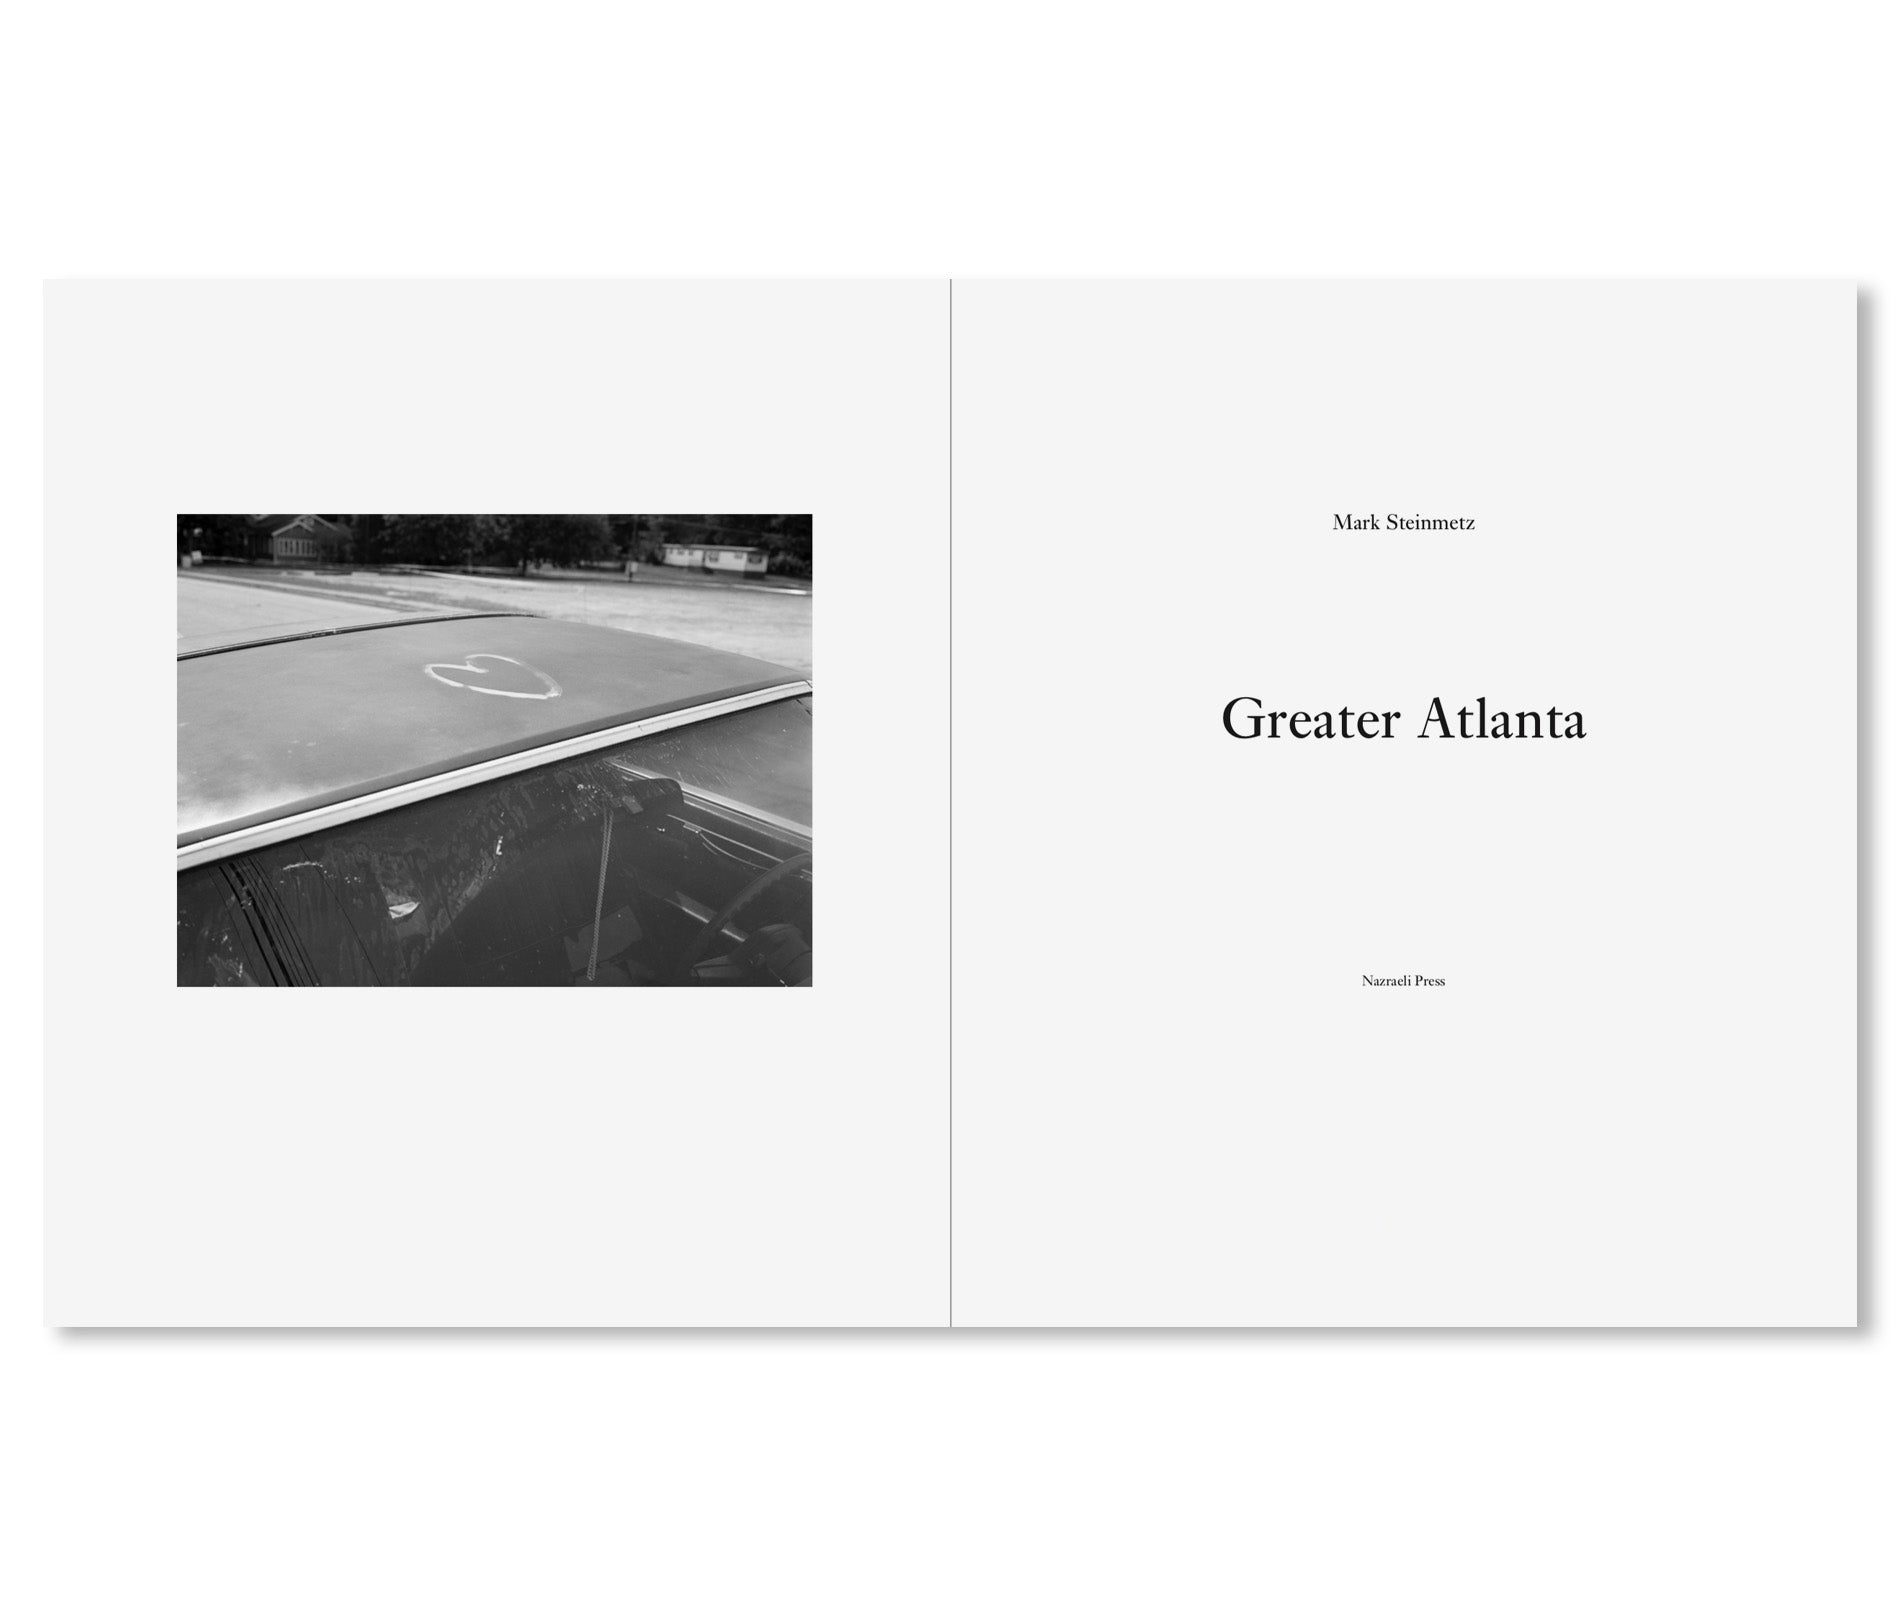 GREATER ATLANTA by Mark Steinmetz